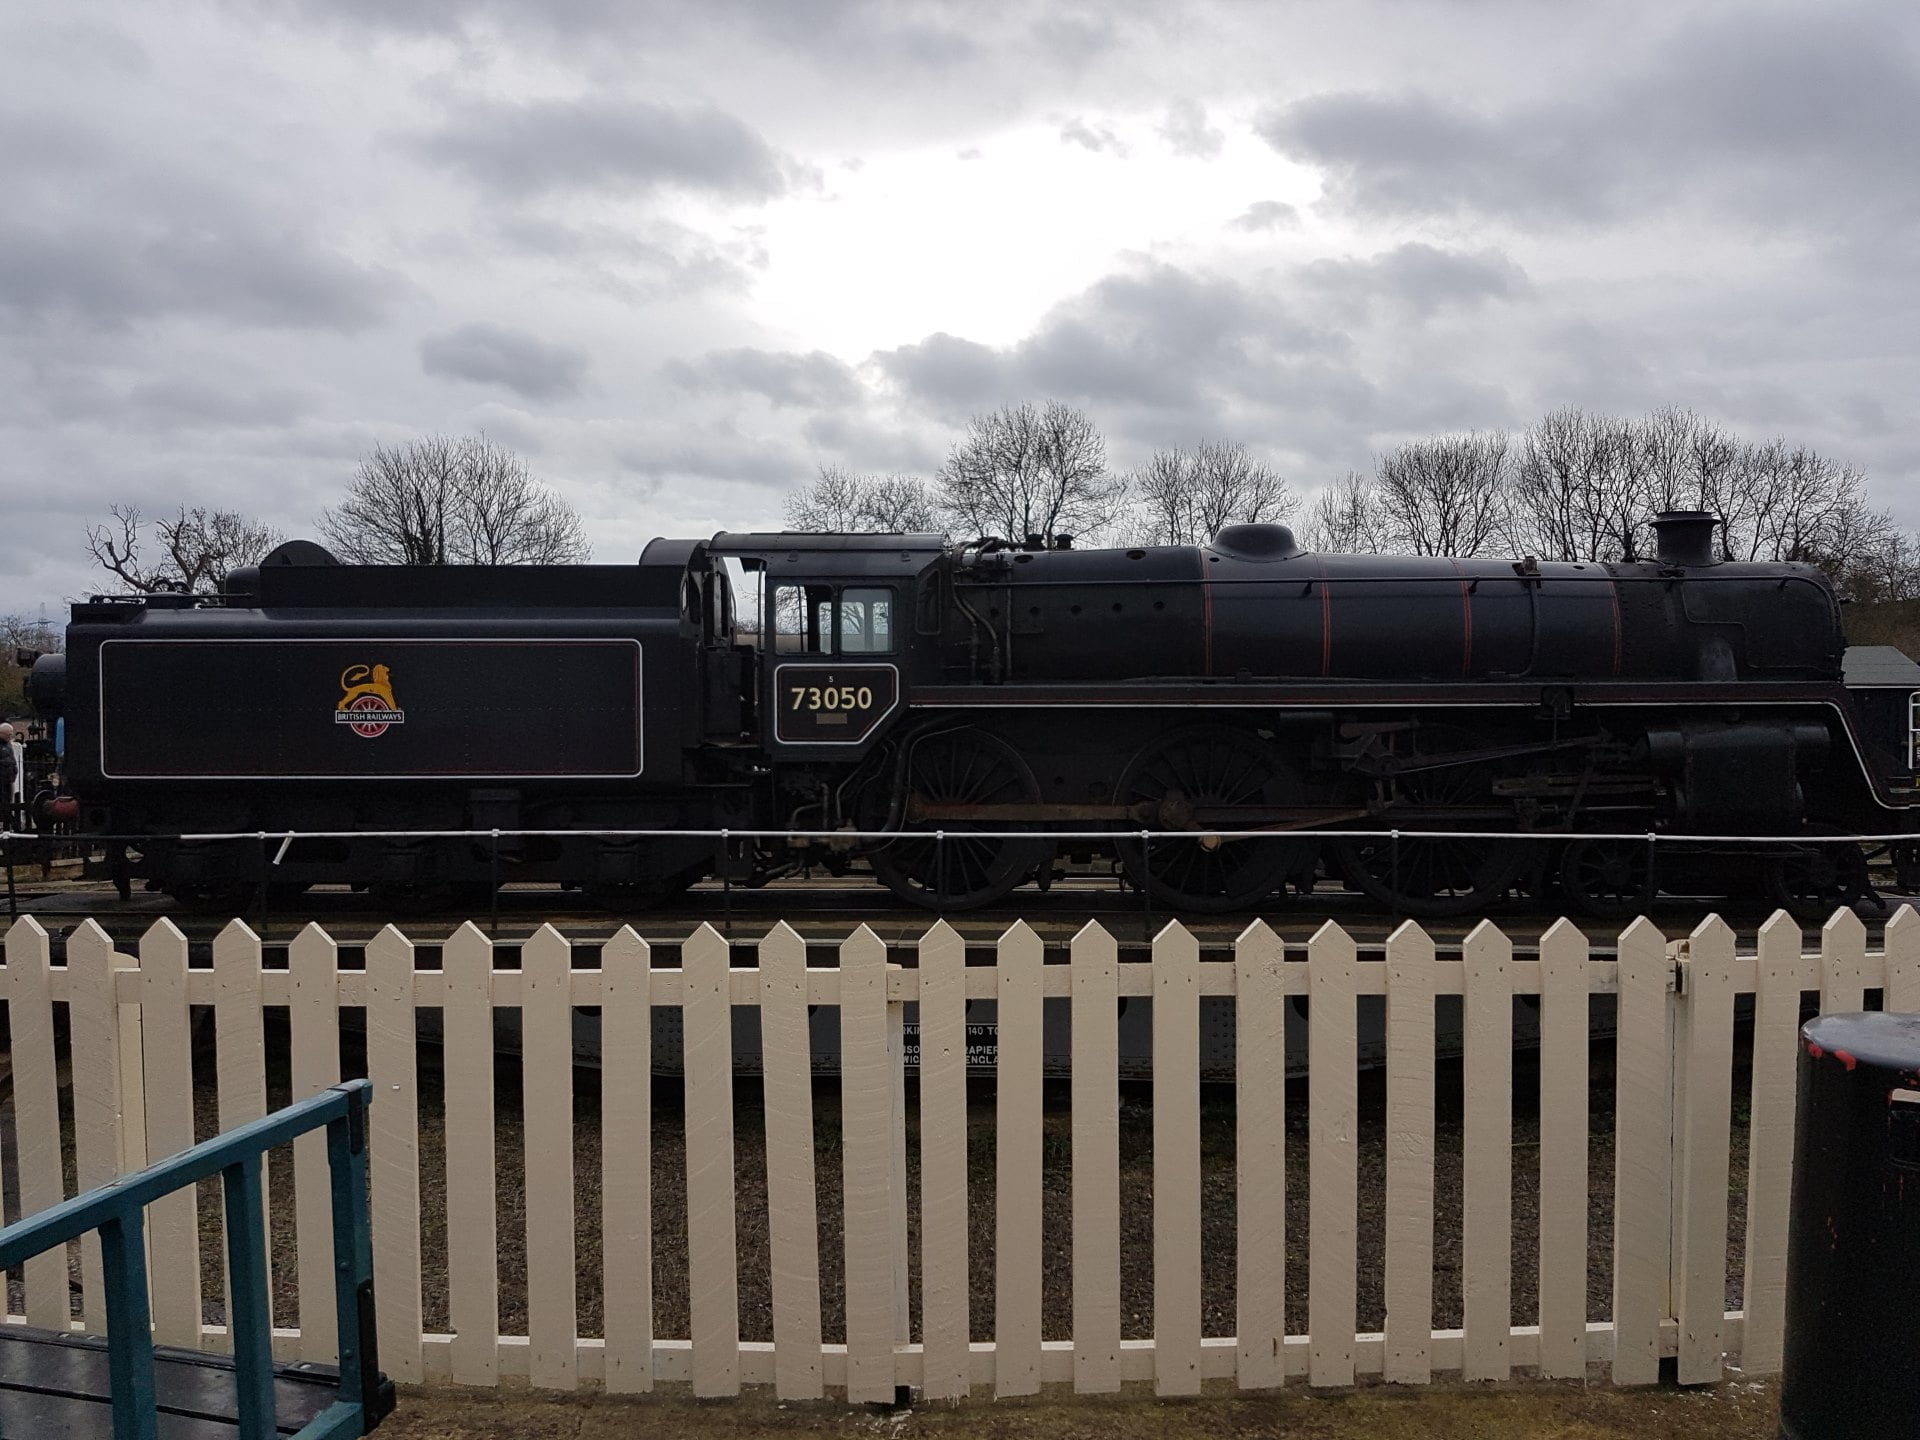 73050 on the Turntable at Wansford Station at the Nene Valley Railway